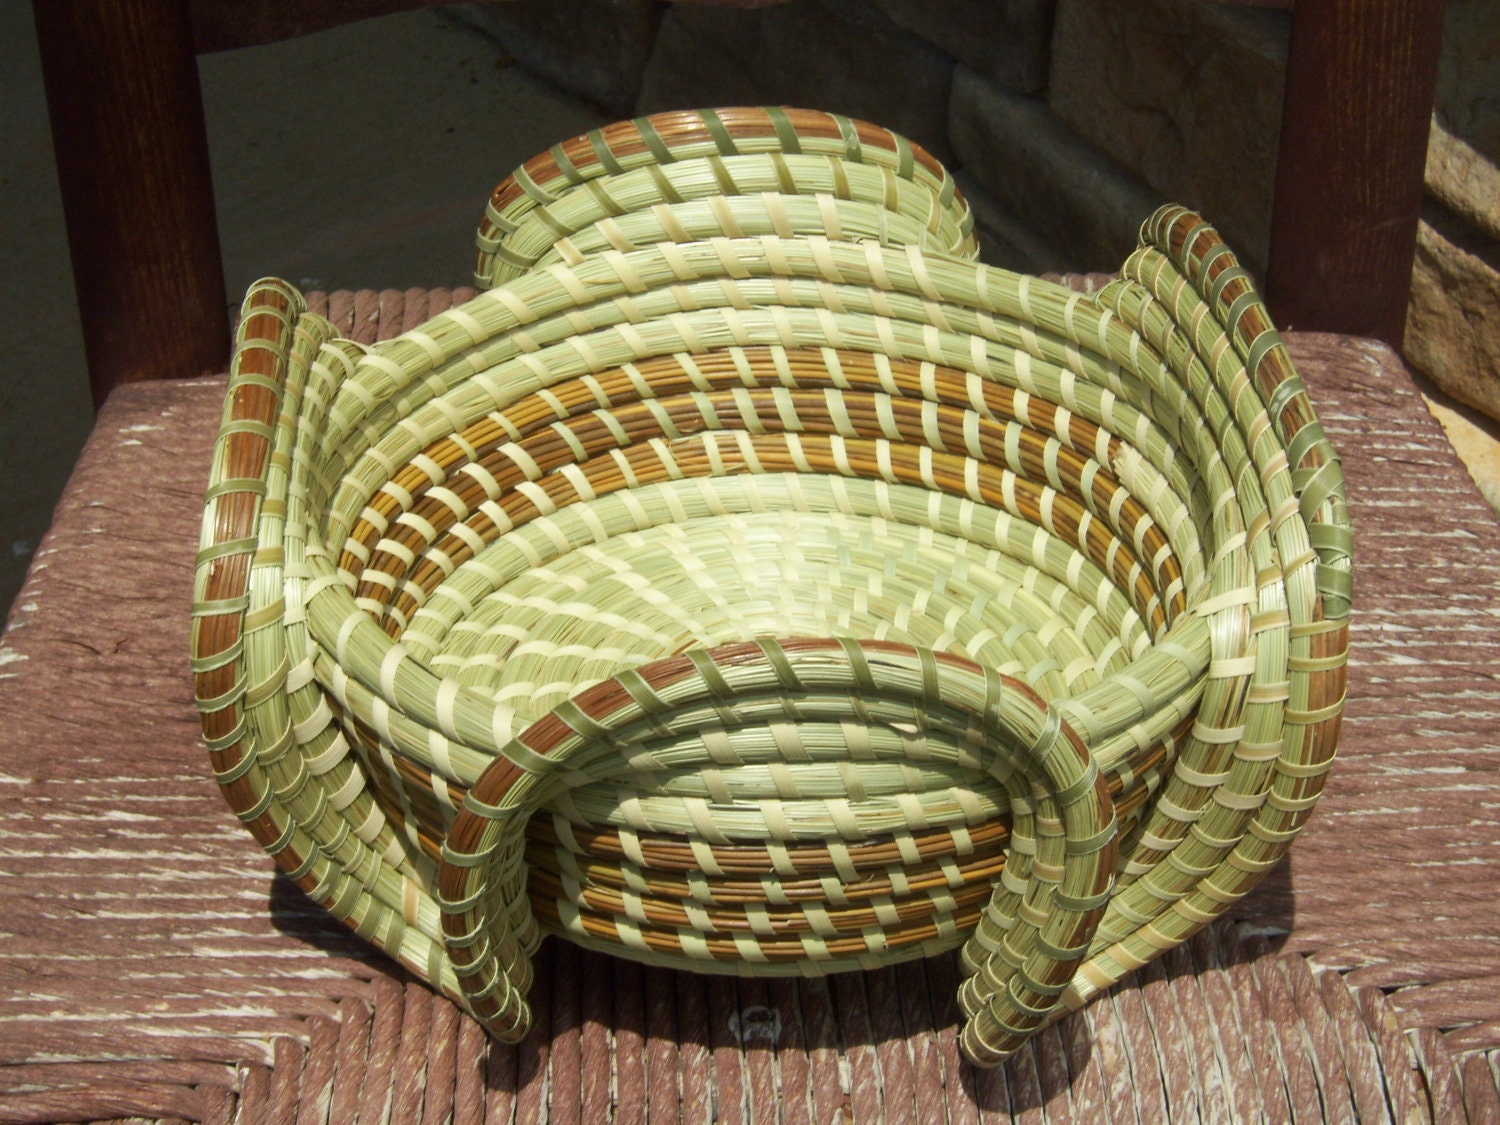 sweetgrass basket You searched for: sweetgrass baskets etsy is the home to thousands of handmade, vintage, and one-of-a-kind products and gifts related to your search no matter what you're looking for or where you are in the world, our global marketplace of sellers can help you find unique and affordable options let's get started.